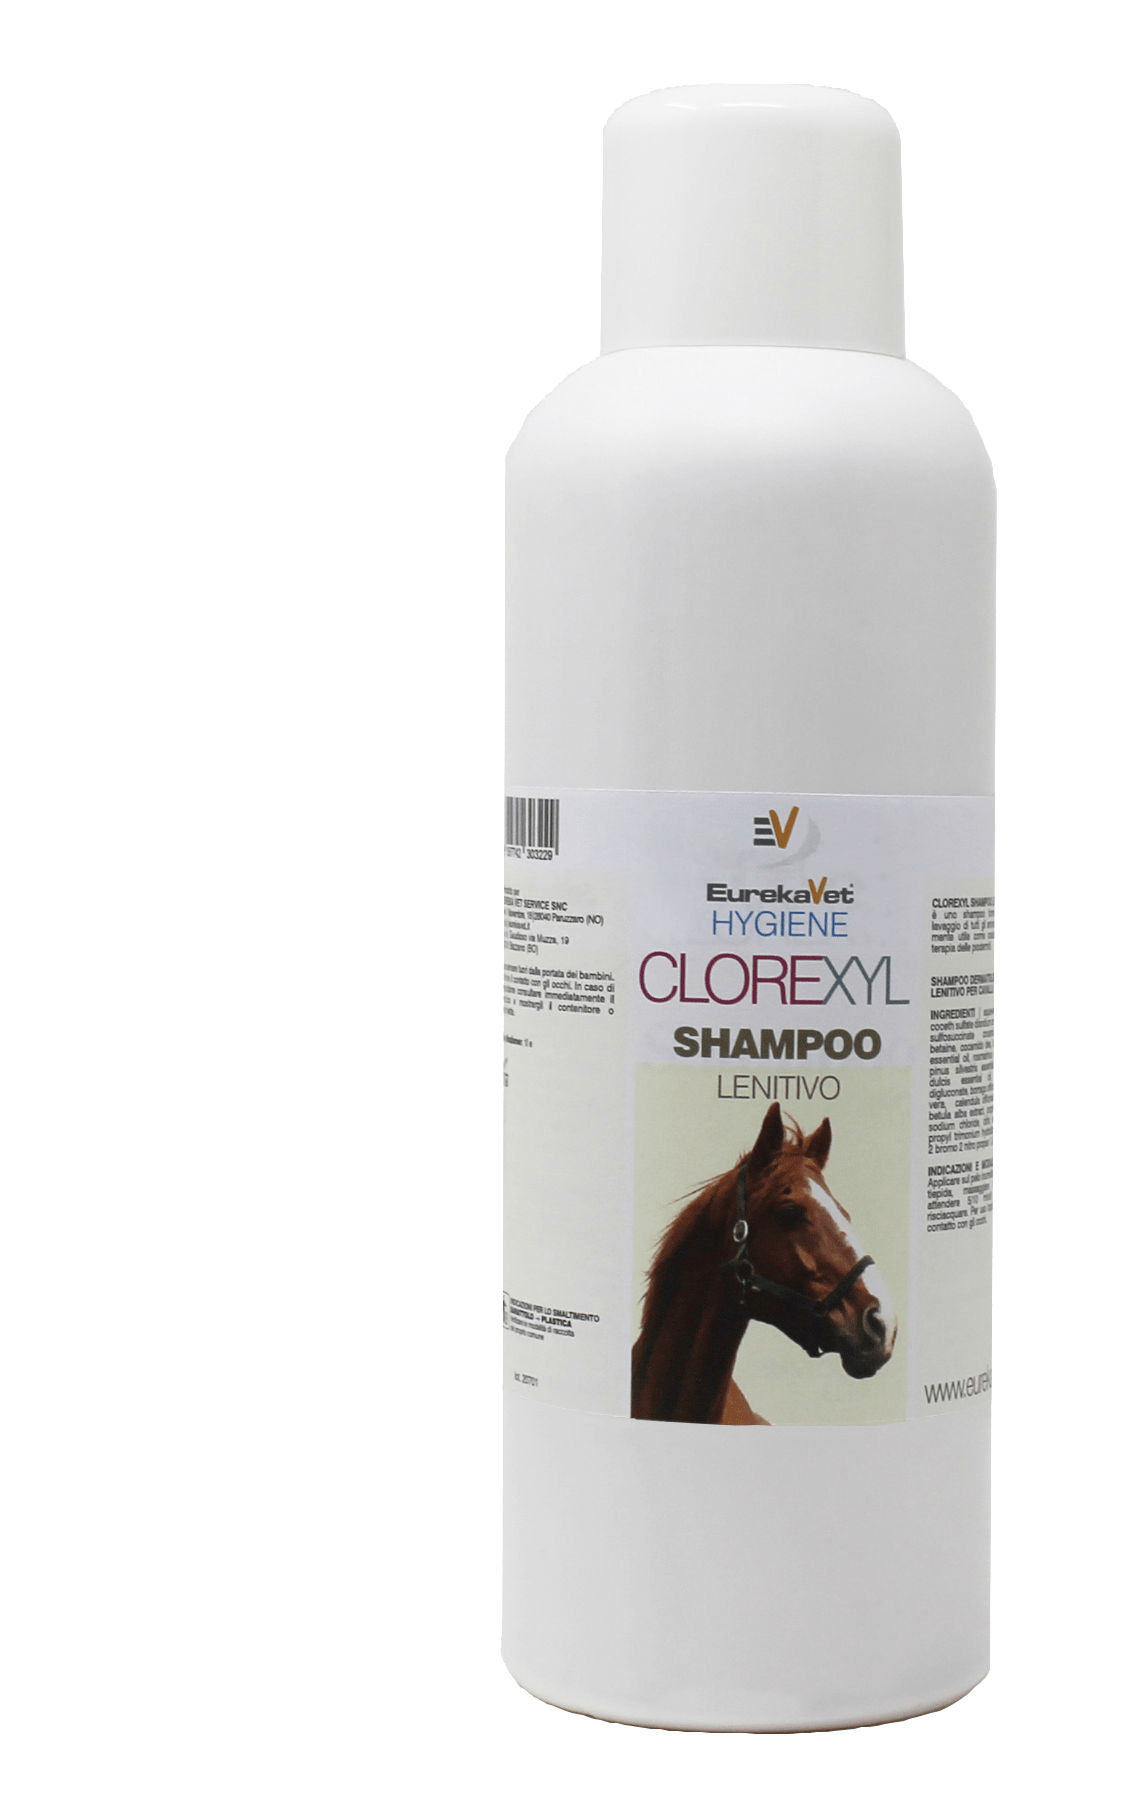 Shampoo-lenitivo-x-popup.png